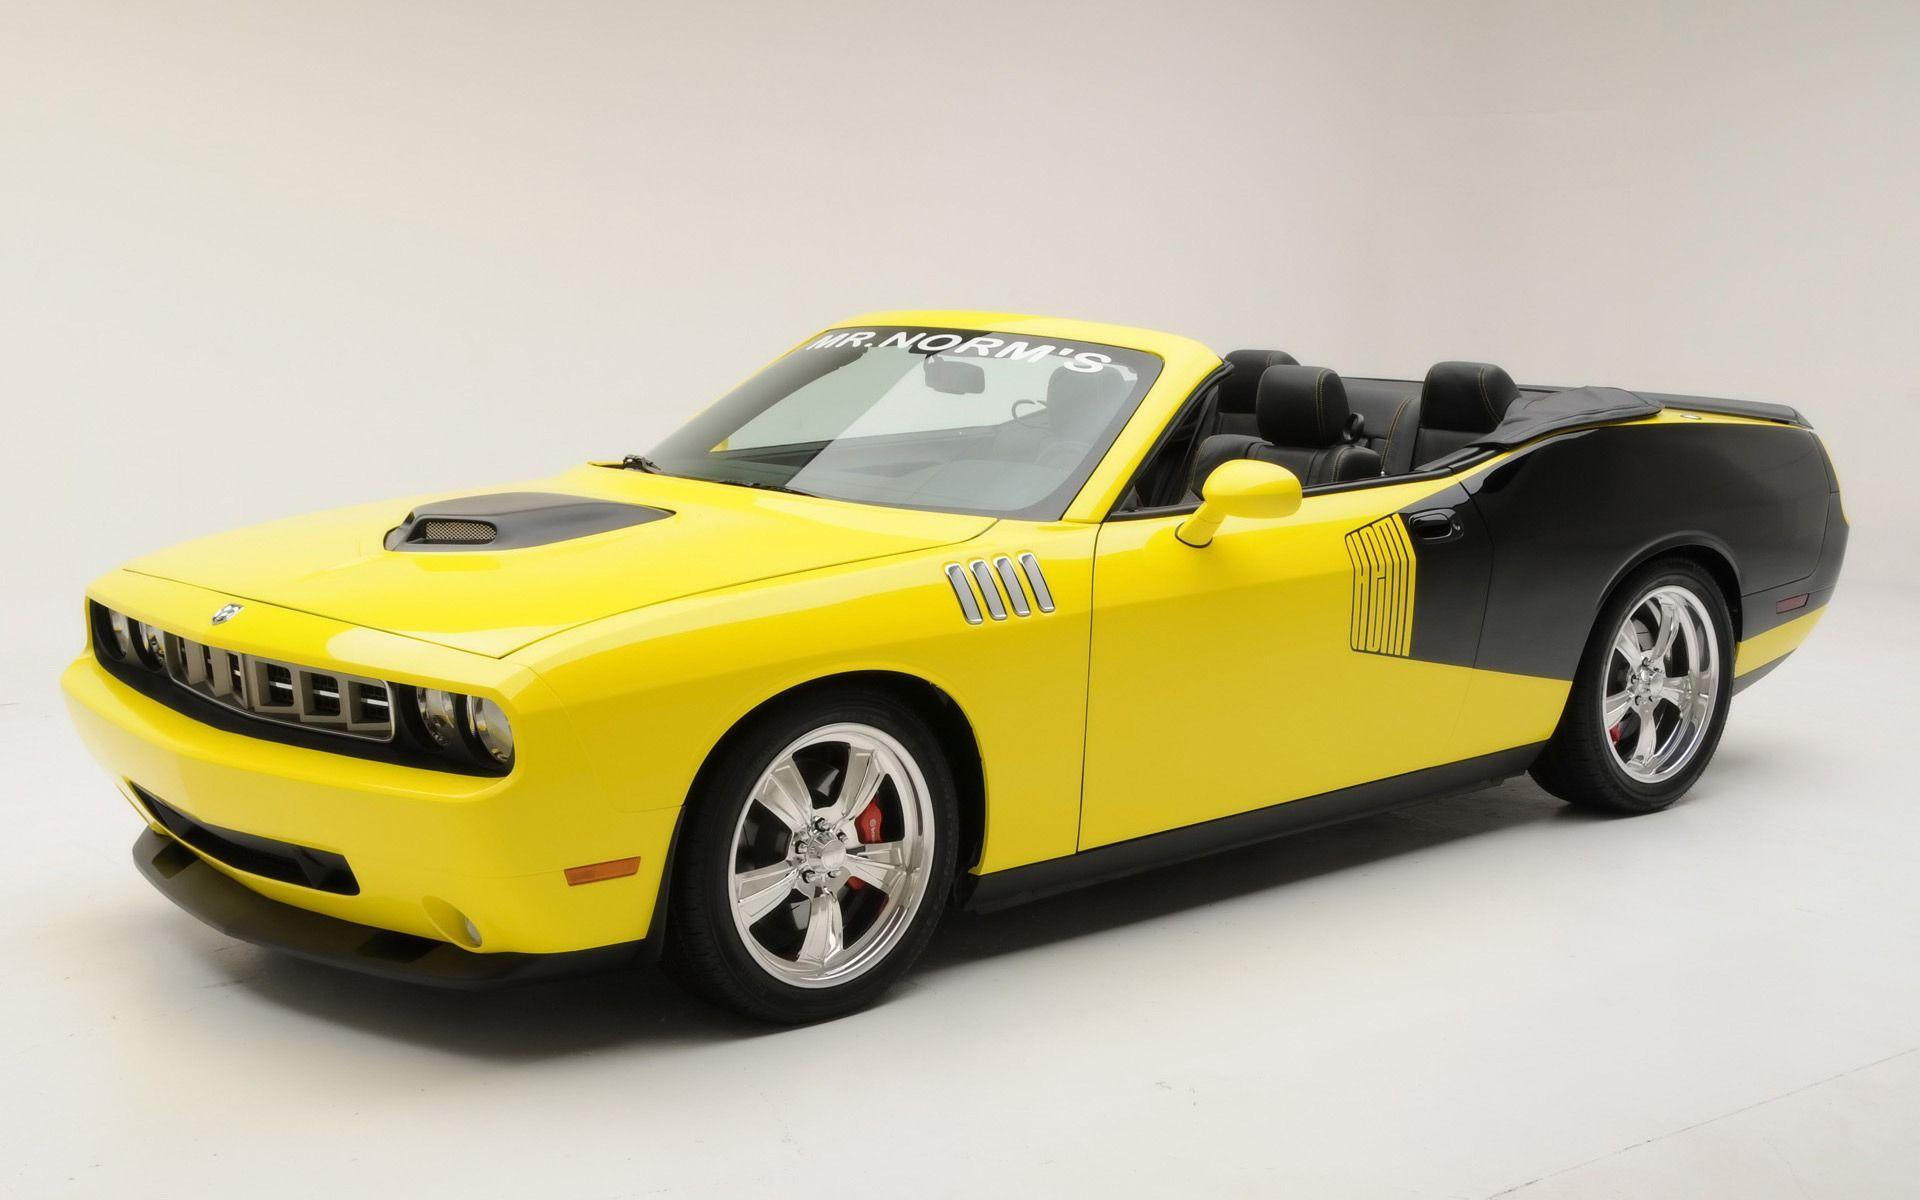 426 Hemi Cuda Convertible Wallpapers Dodge Cars Wallpapers in jpg